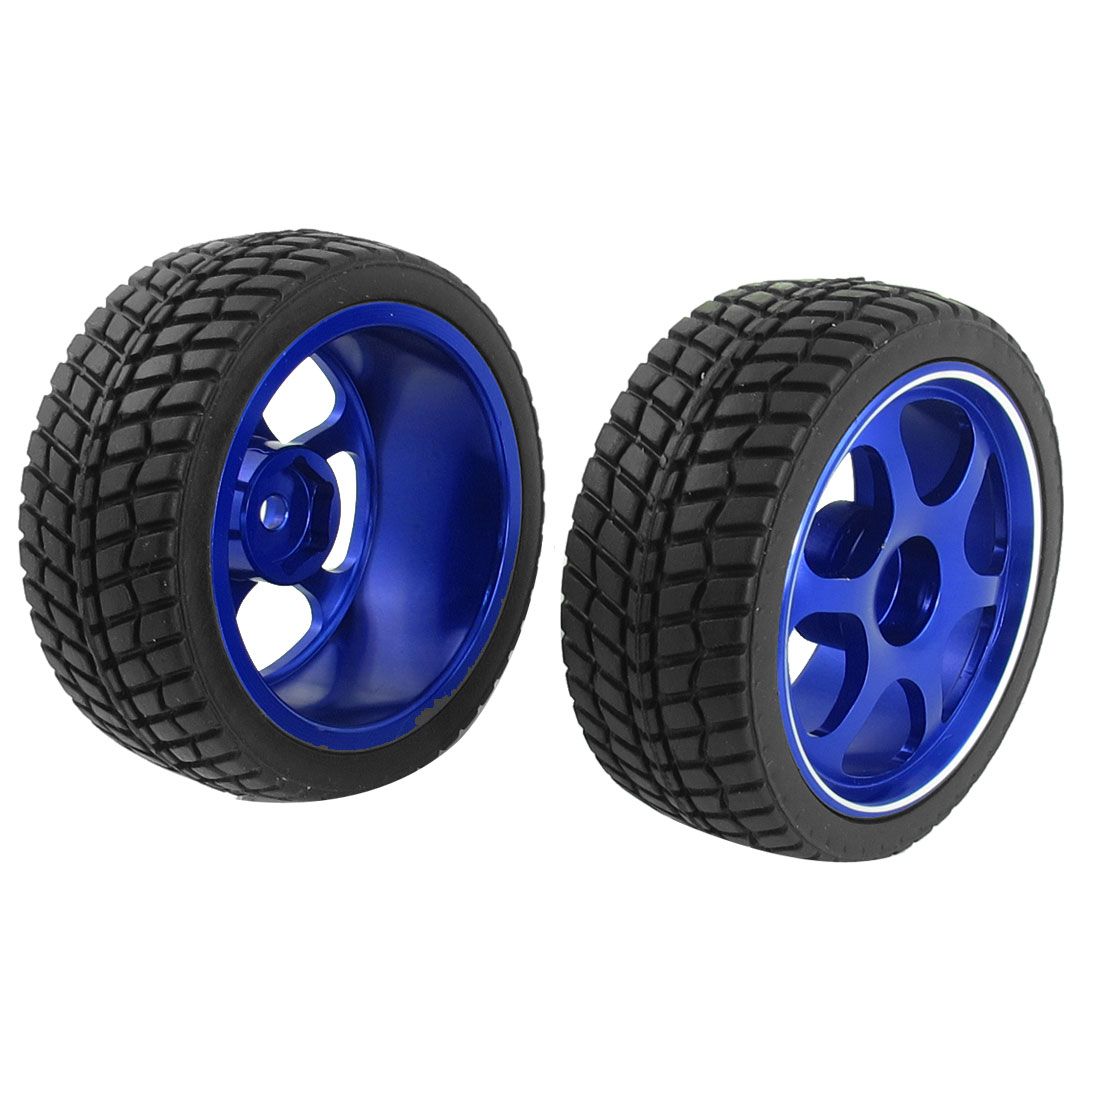 2pcs Black Blue 67mm Wheel Tire for RC Model 1:10 Scale Flat Racing Car